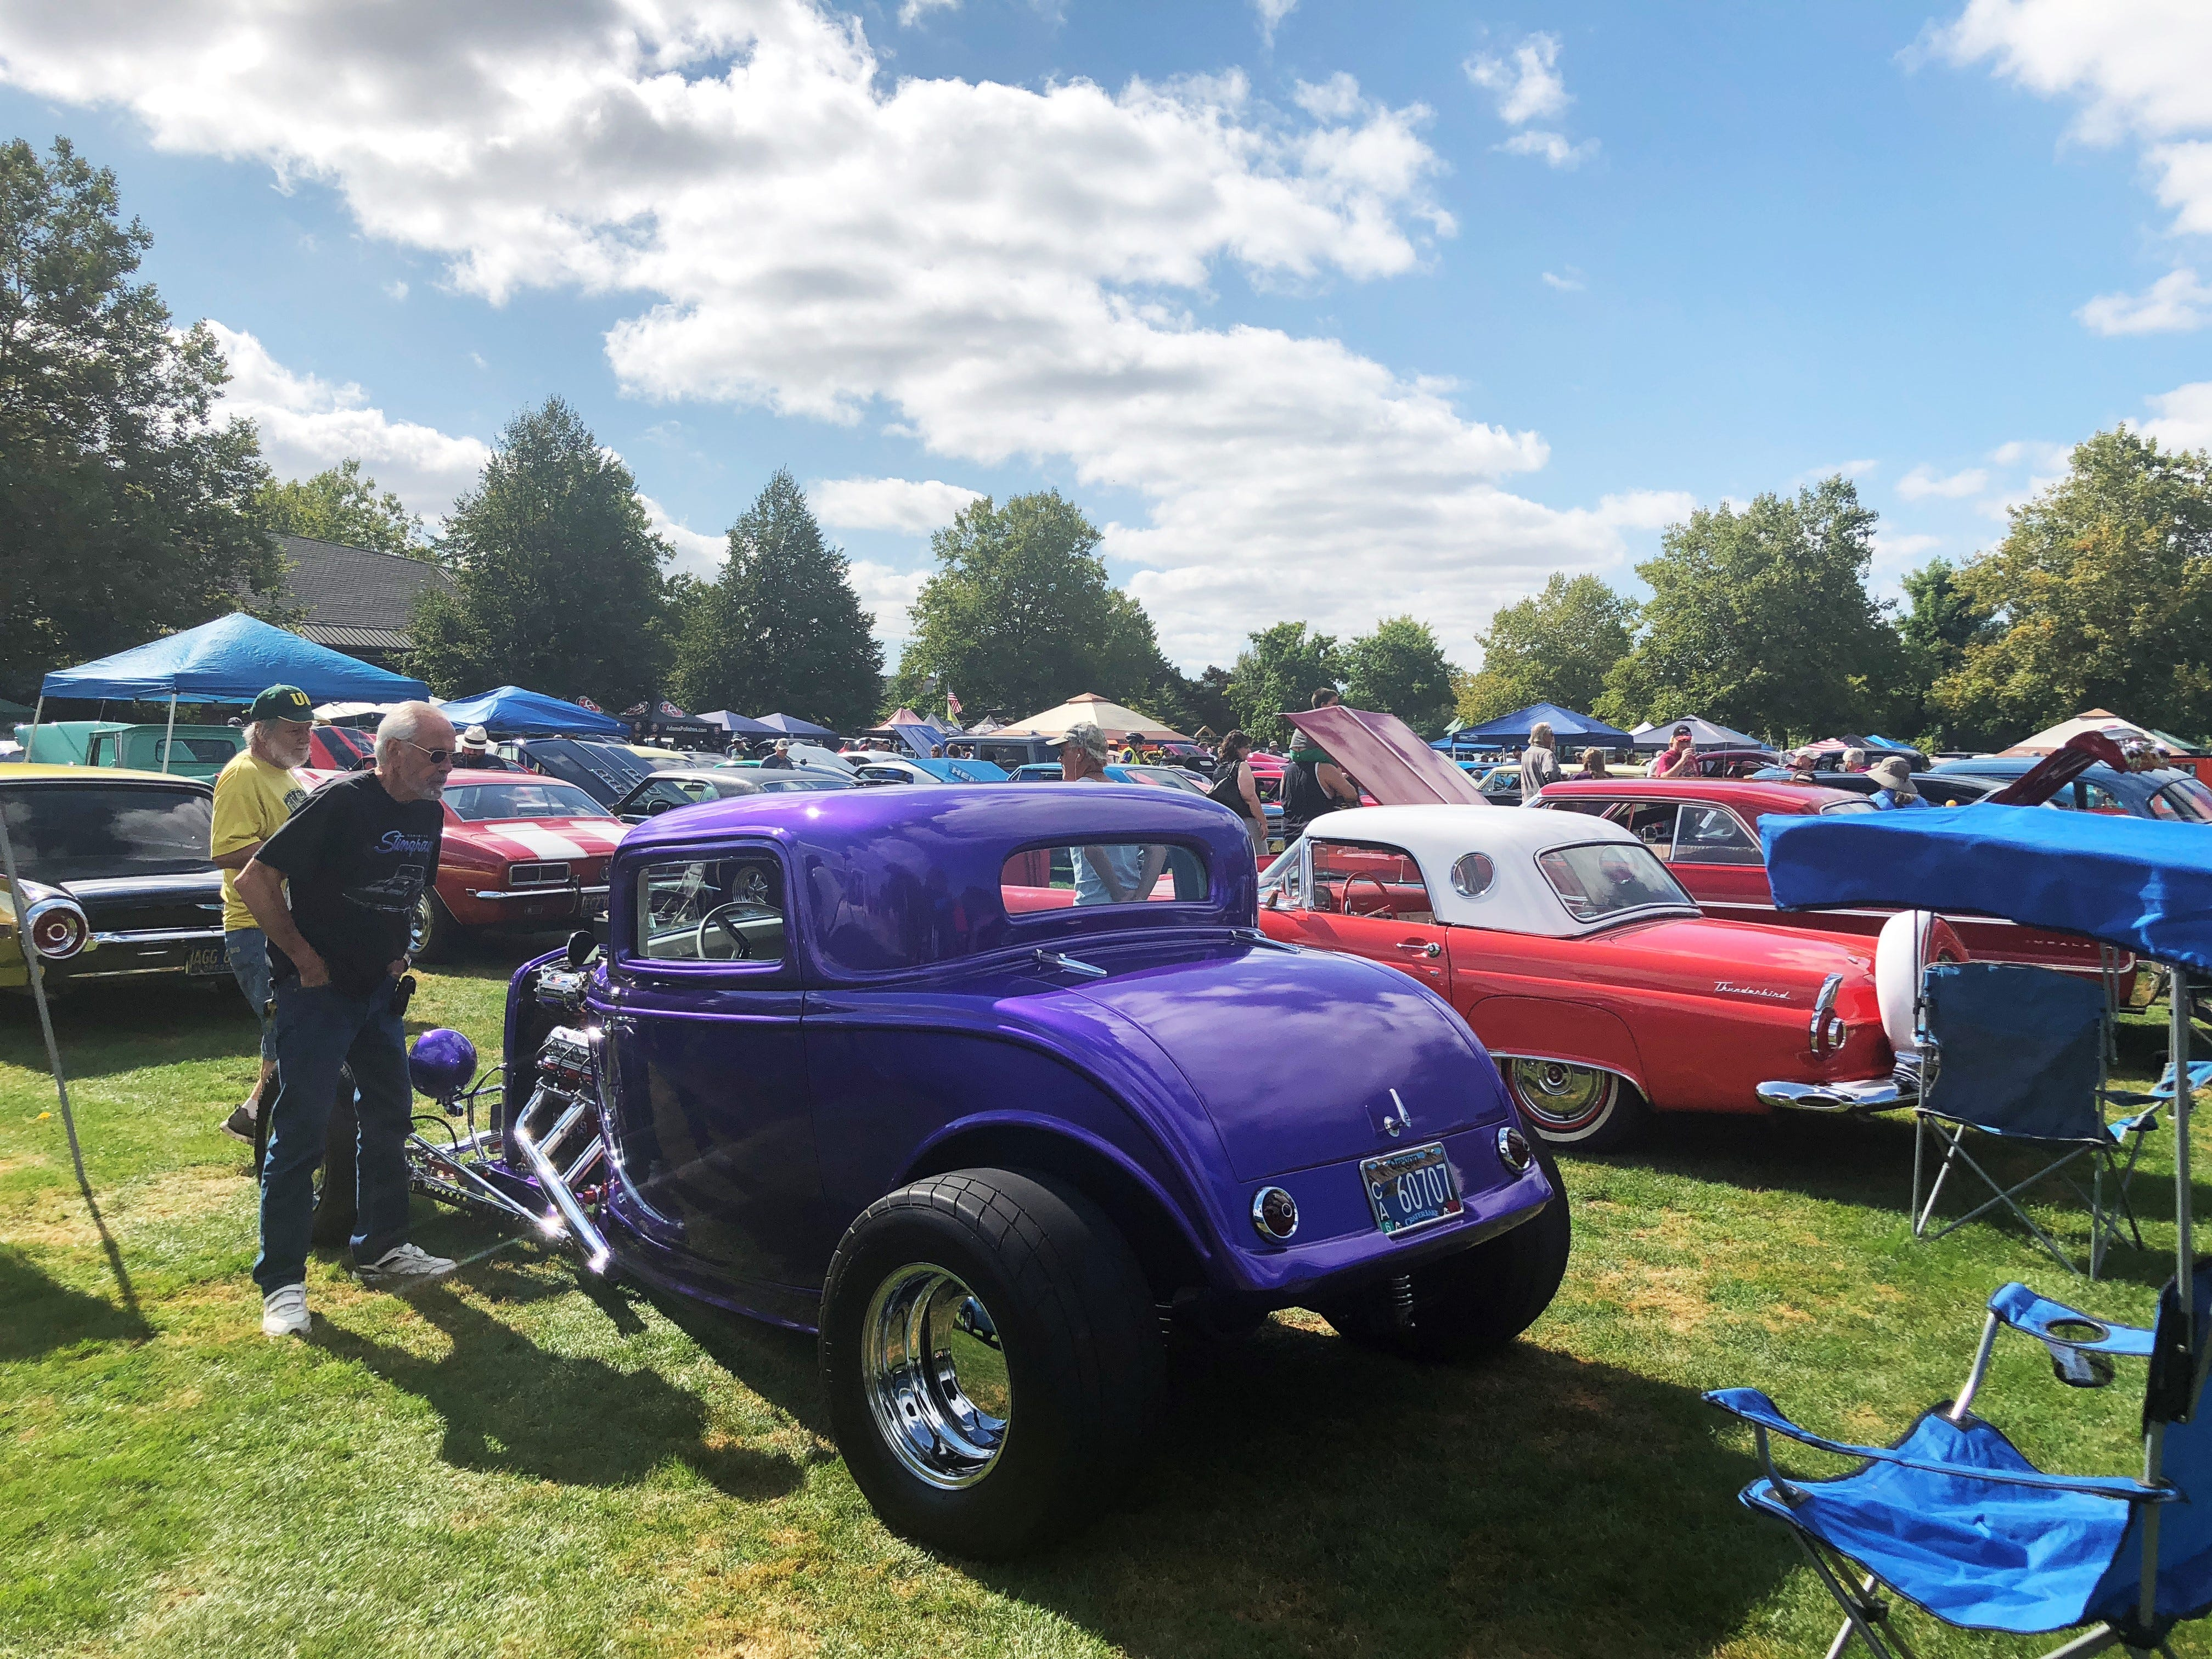 Spectators looking at a car at the 27th Annual Carousel Cruise at Riverfront Park in Salem on Saturday, Sept. 1.